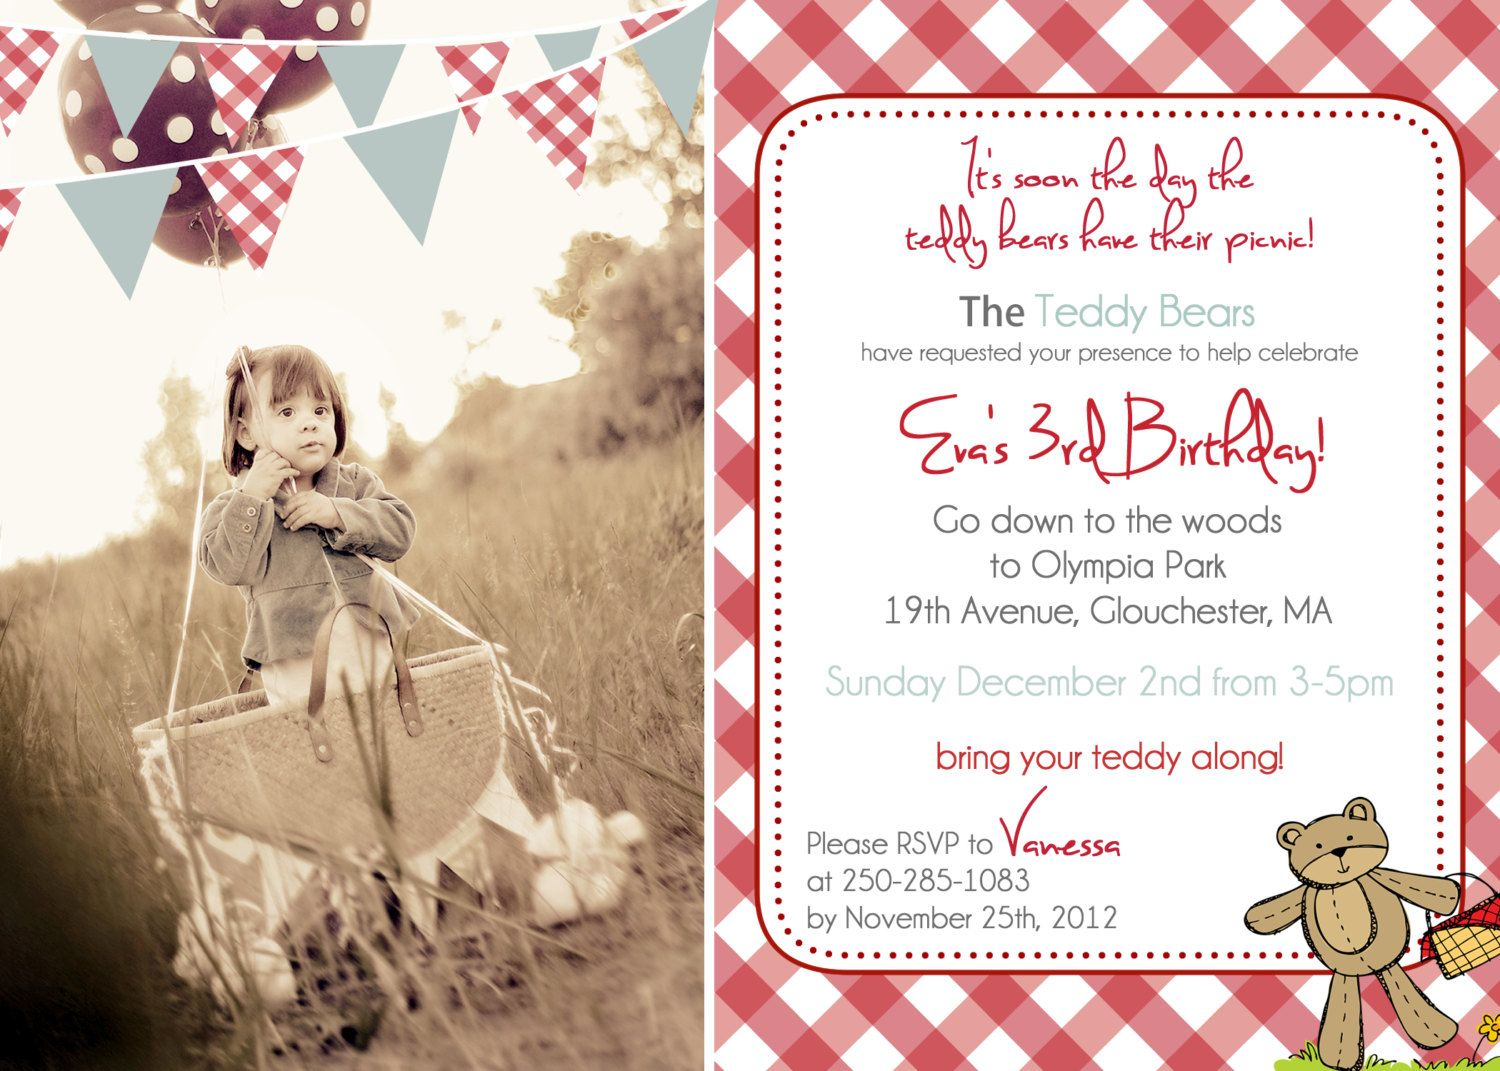 teddy bear picnic invitations template - Google Search | Fianna\'s ...